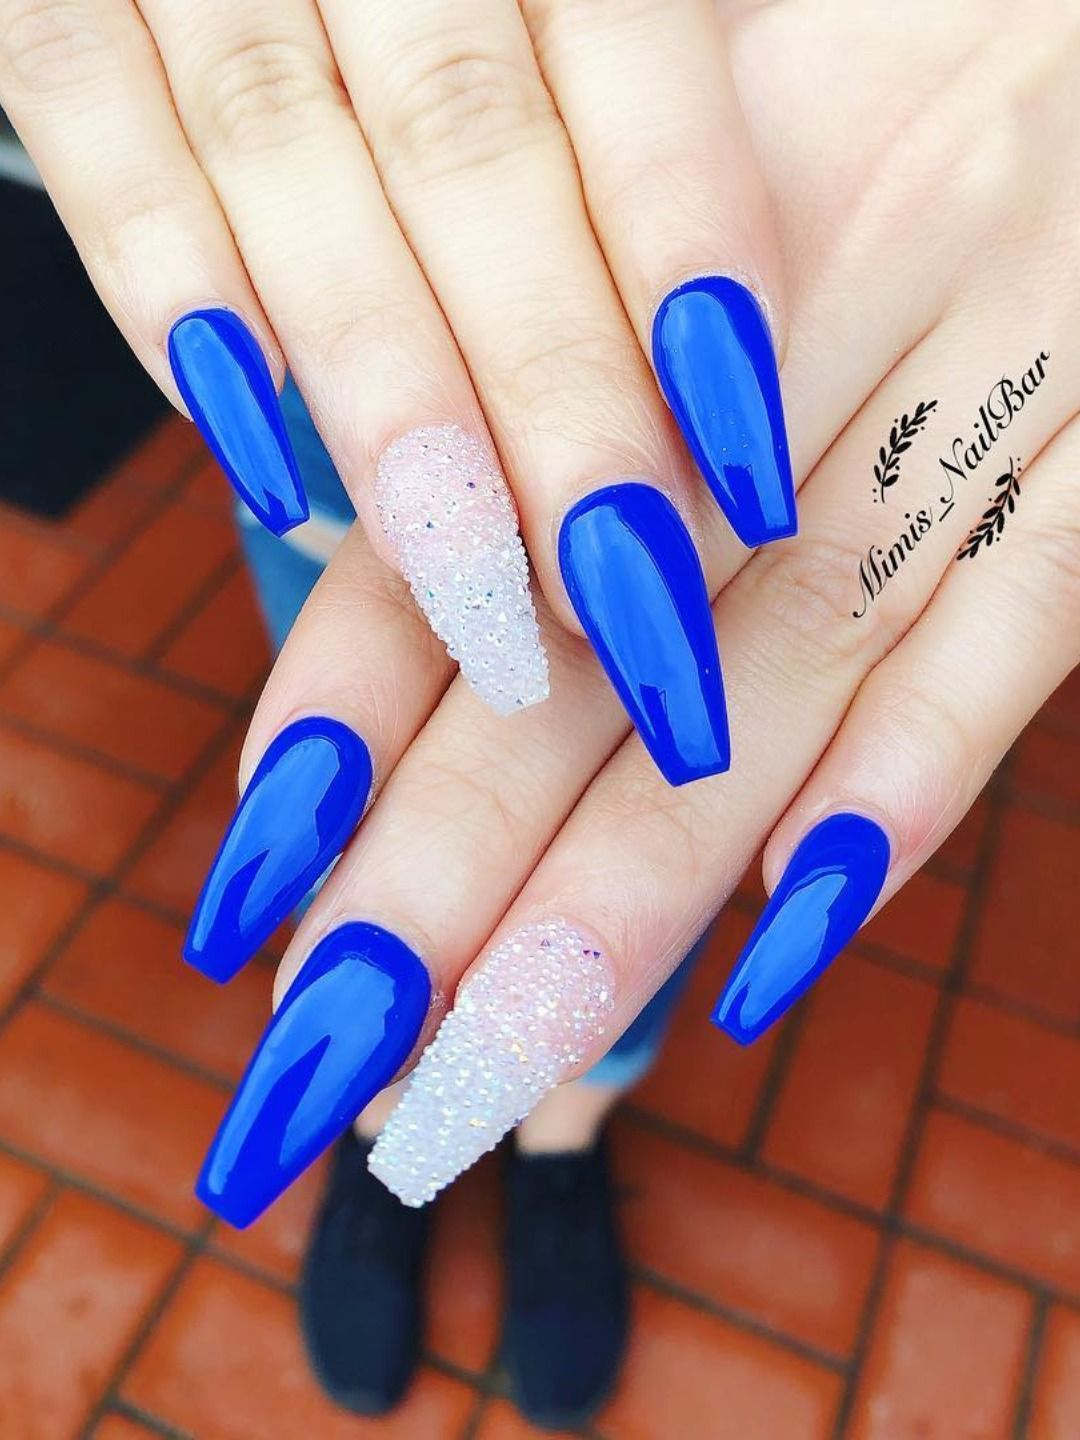 120 Best Coffin Nails Ideas That Suit Everyone In 2020 Blue Glitter Nails Blue Acrylic Nails Blue Prom Nails